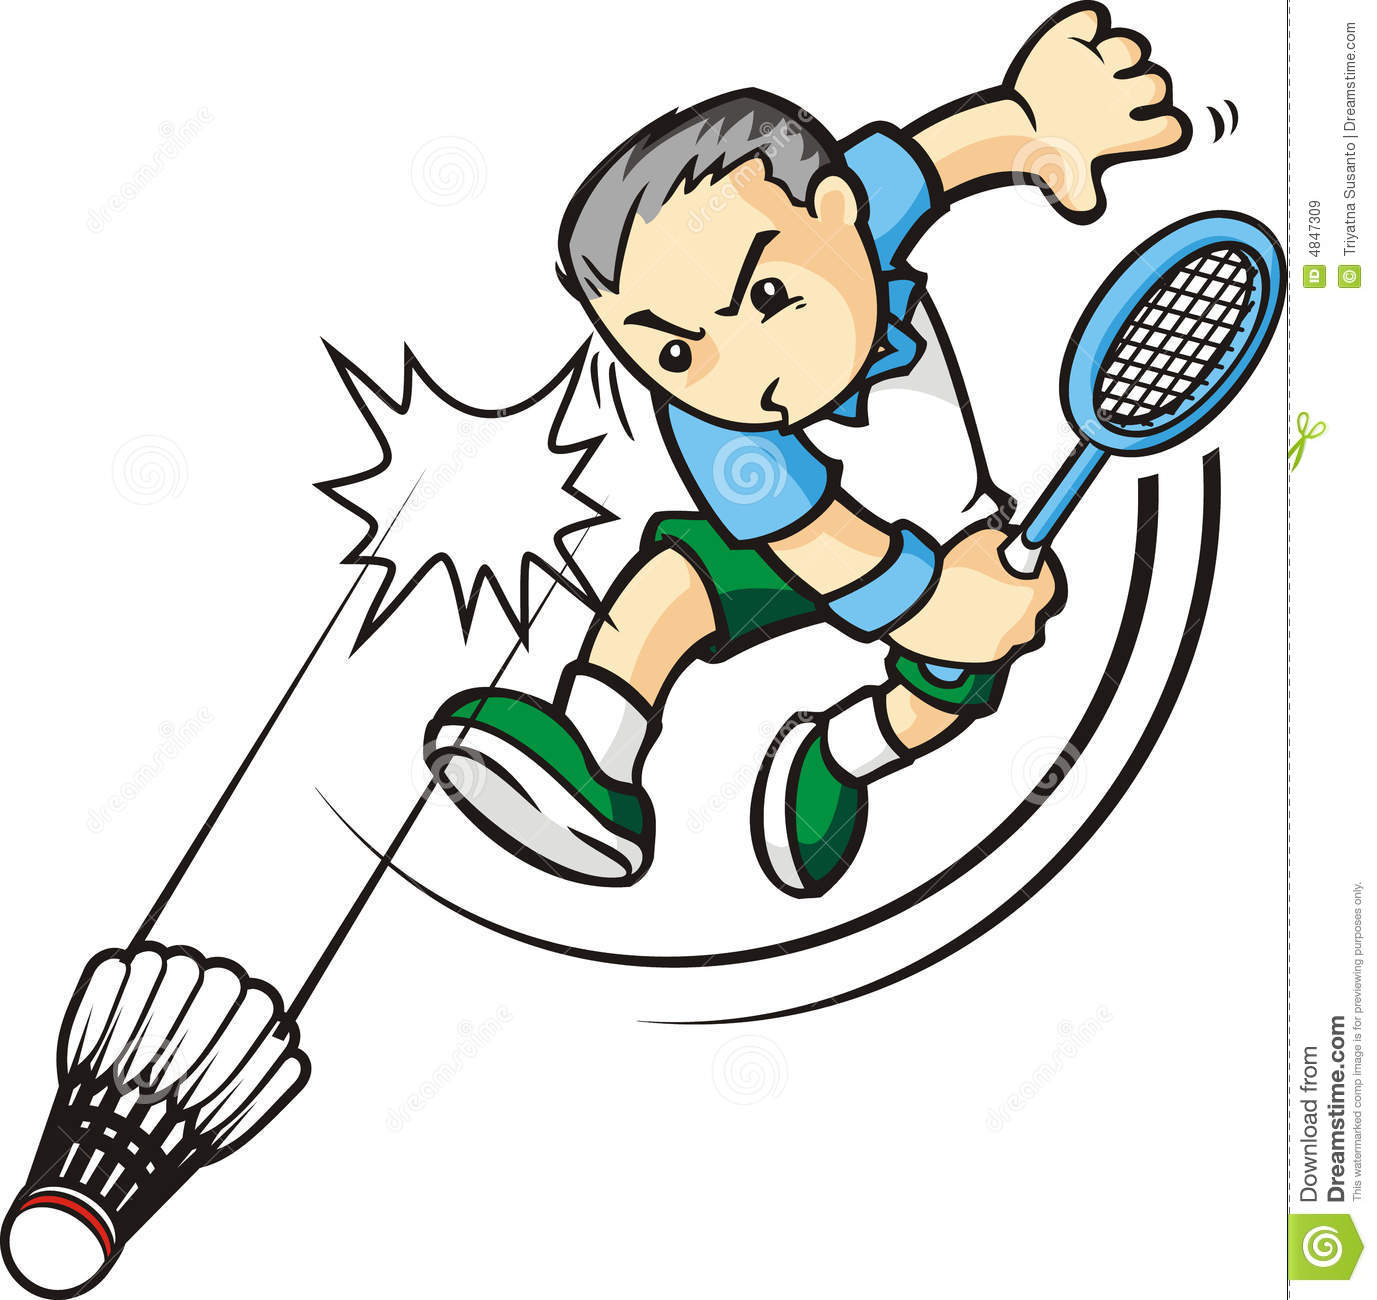 cartoon sport royalty free stock images image 4847309